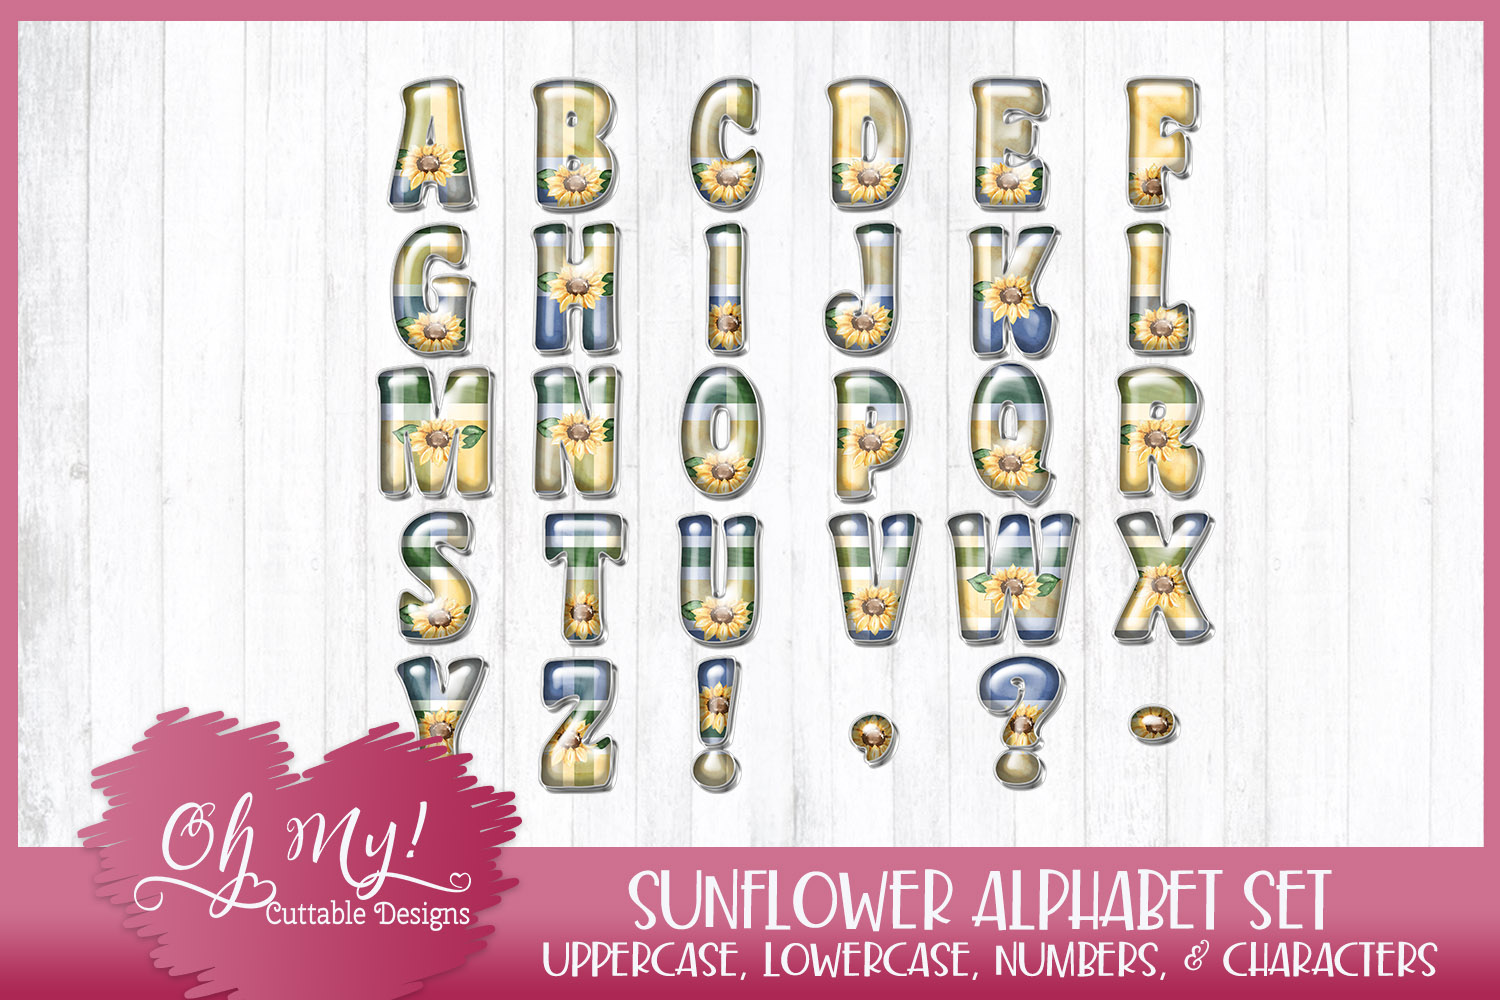 Sunflower Alphabet Bundle Clipart Graphics Word Art example image 2